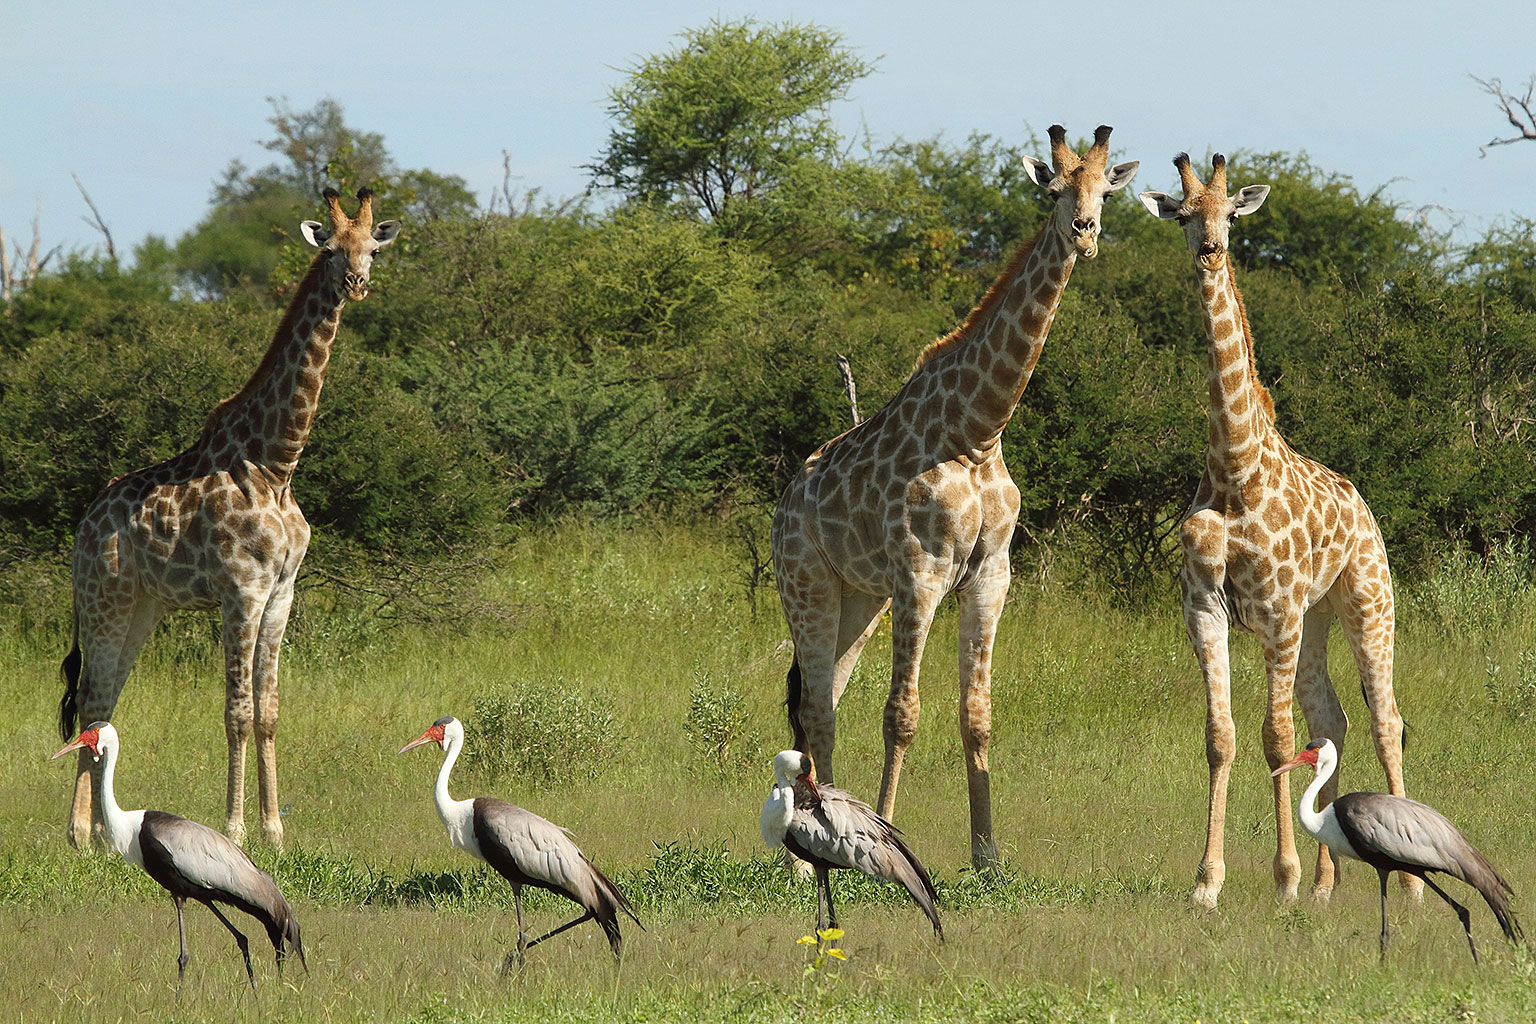 Wattled-cranes-and-Angolan-giraffes-Nature-Guide-Training-Botswana